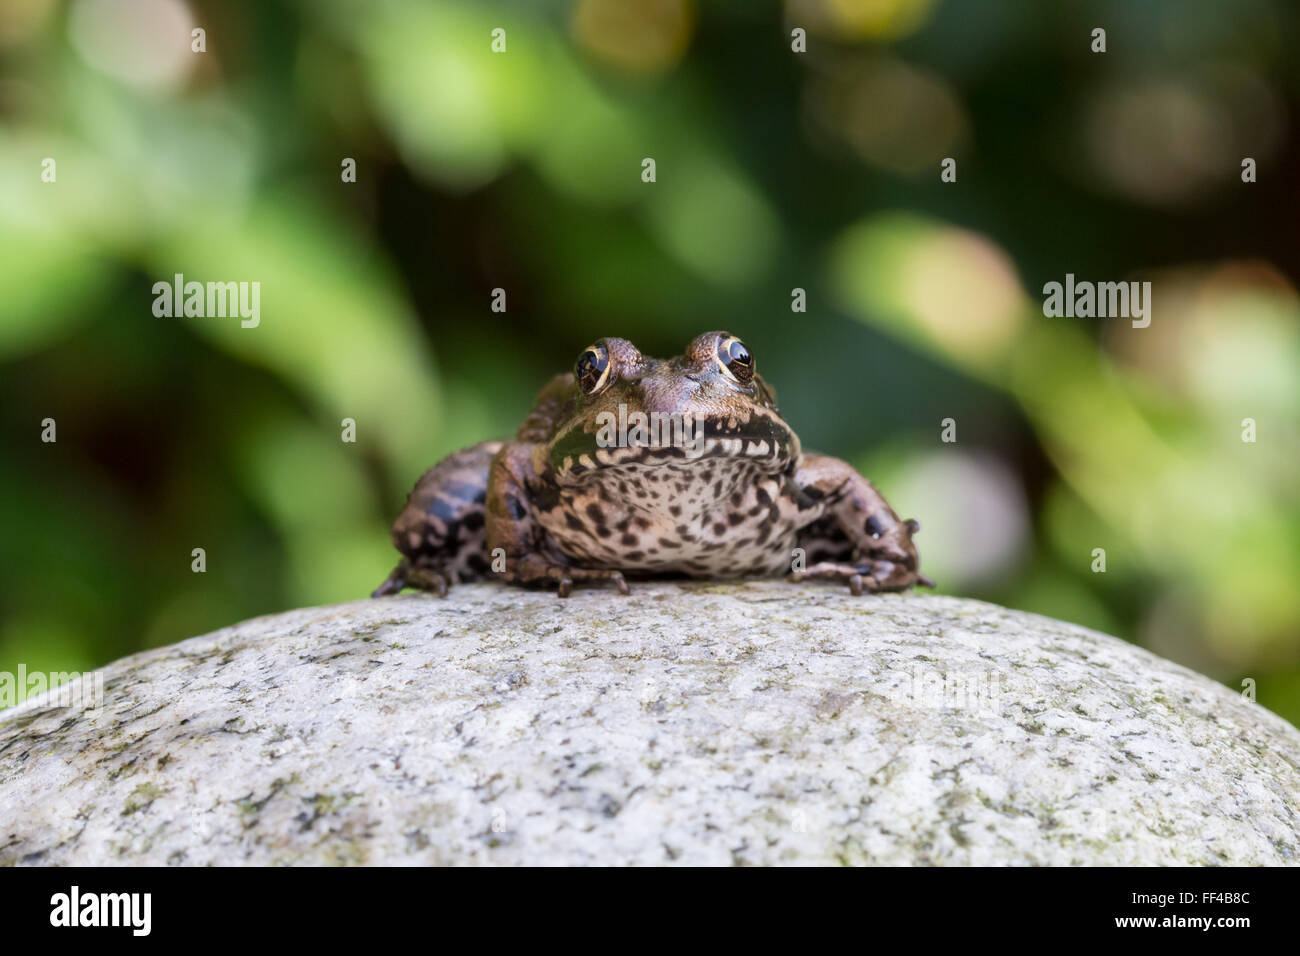 Common water frog on a stone in the autumn sun Stock Photo